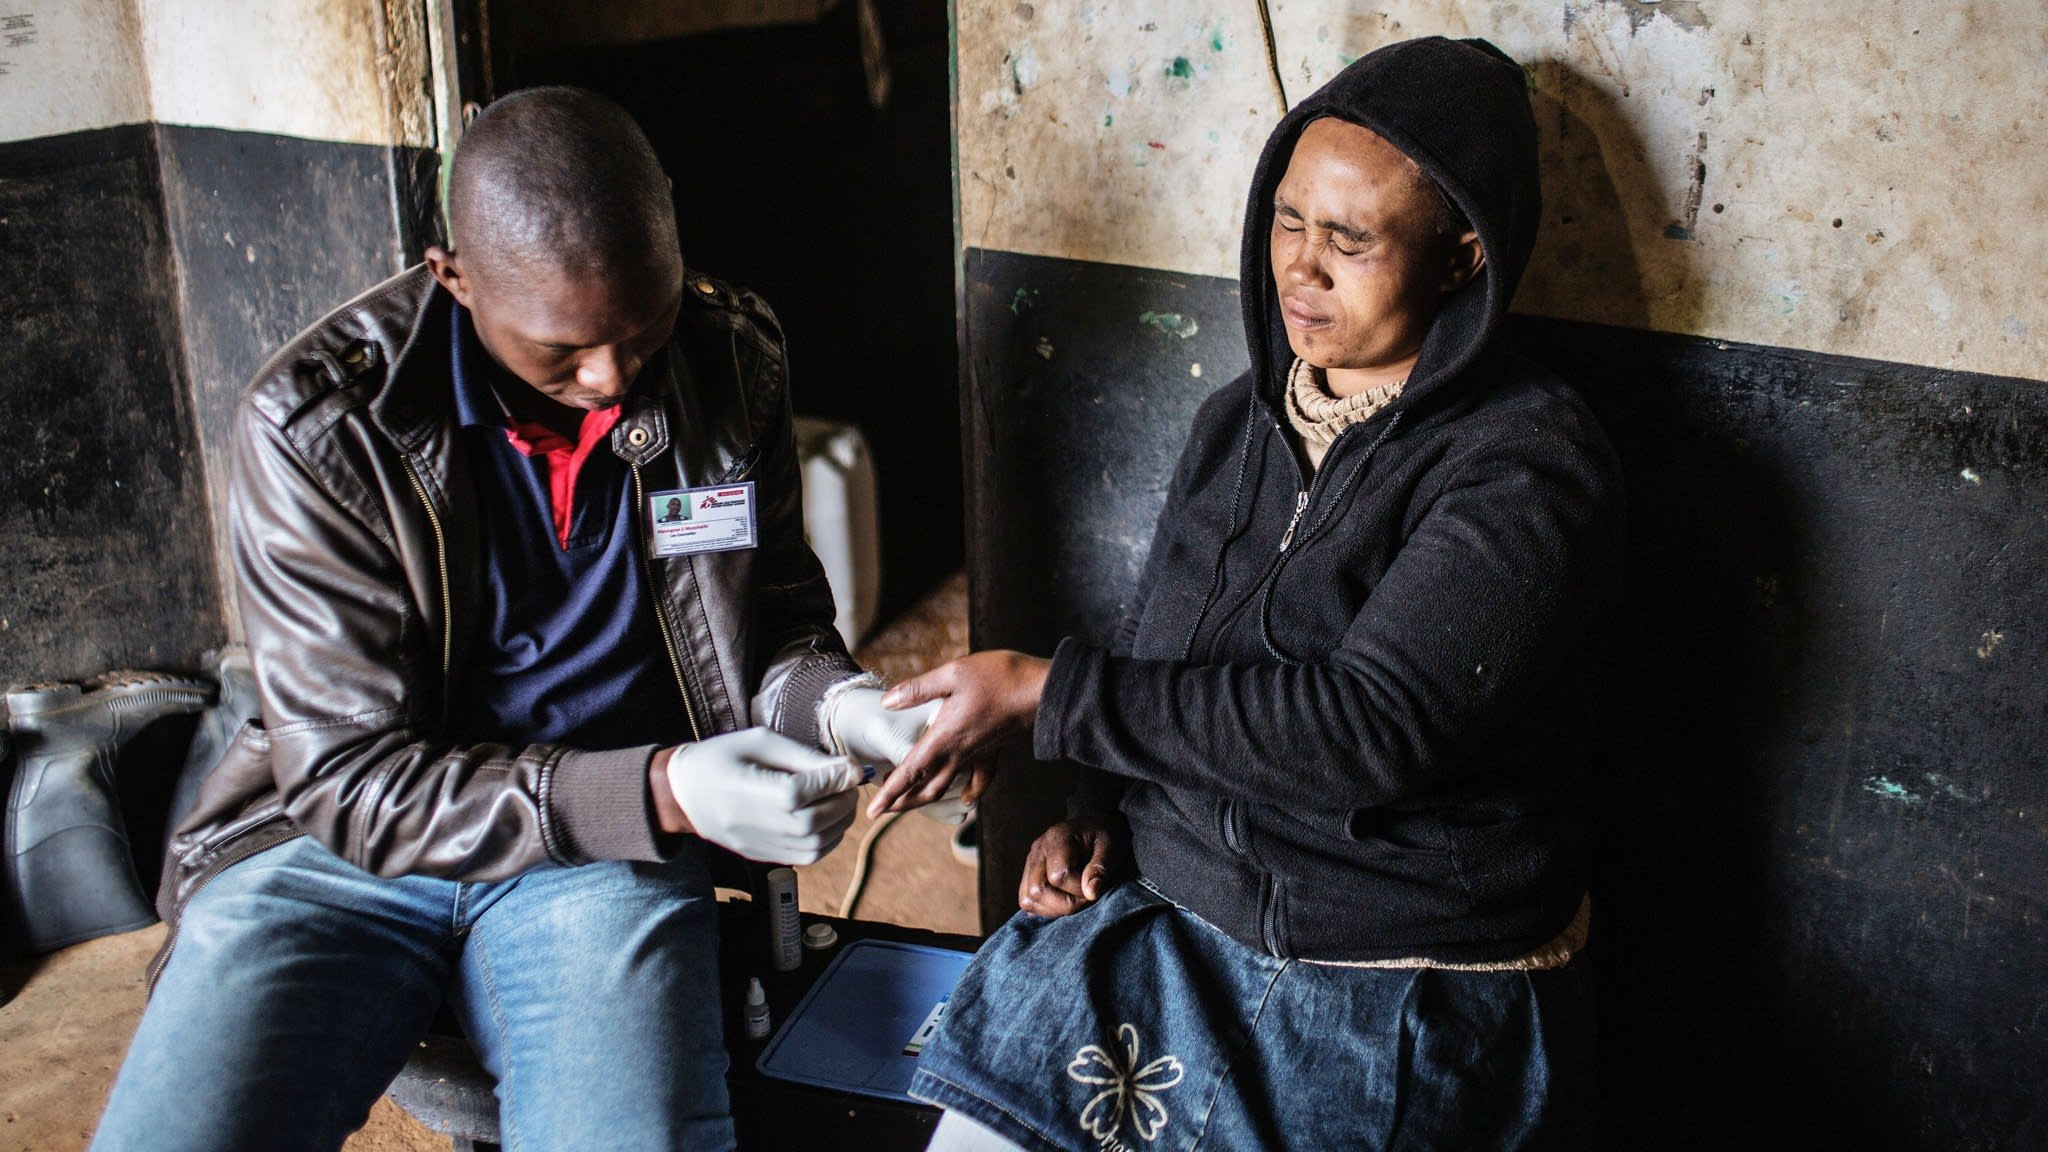 A Johannesburg resident is tested for HIV by an MSF health worker